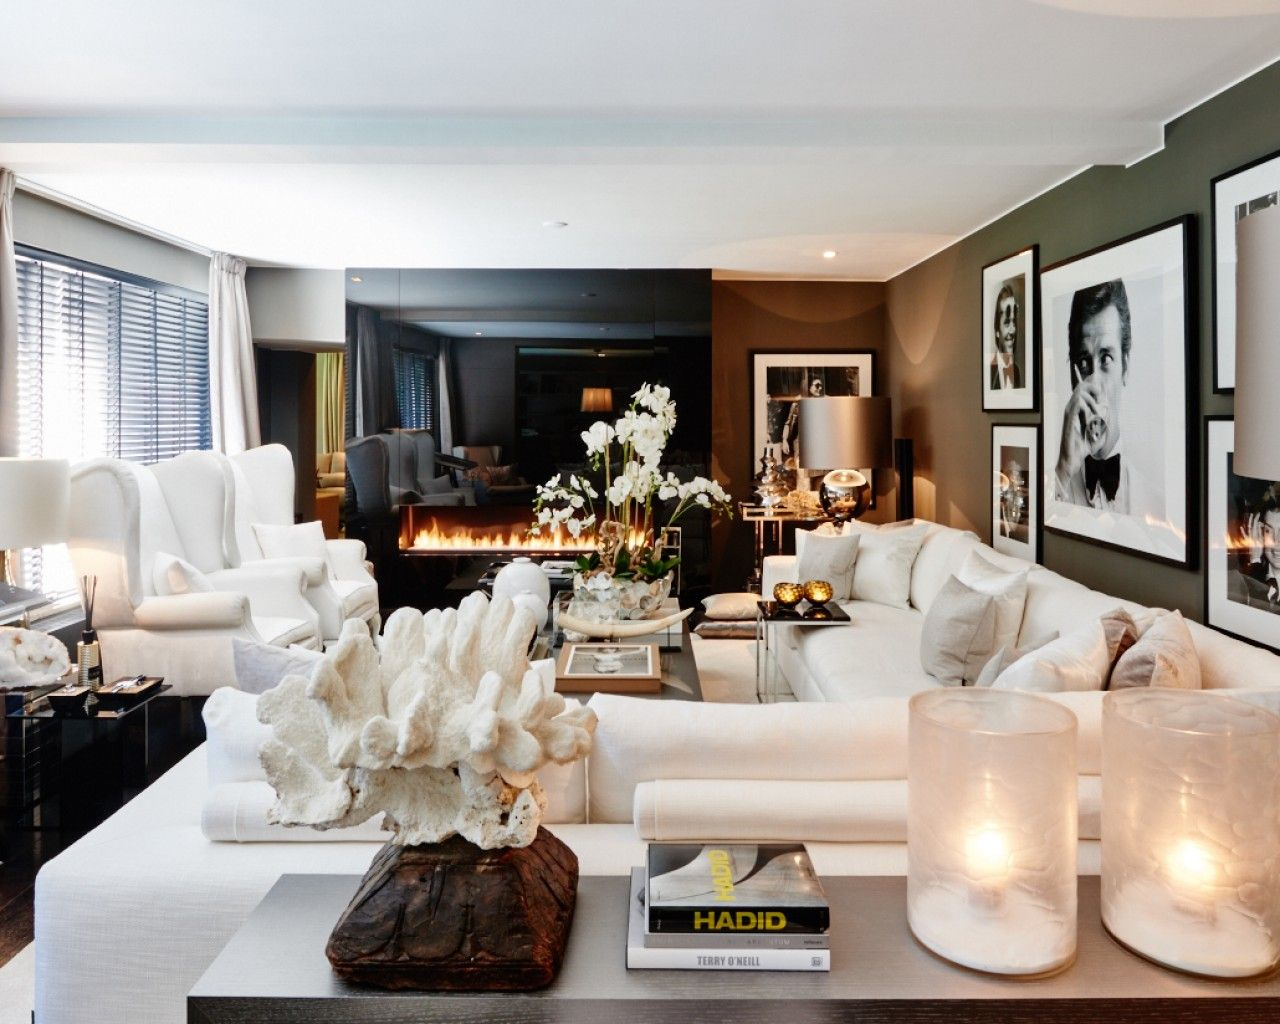 High Quality The Netherlands / Huizen / Head Quarter / Living Room / Ron Galella / Eric  Kuster